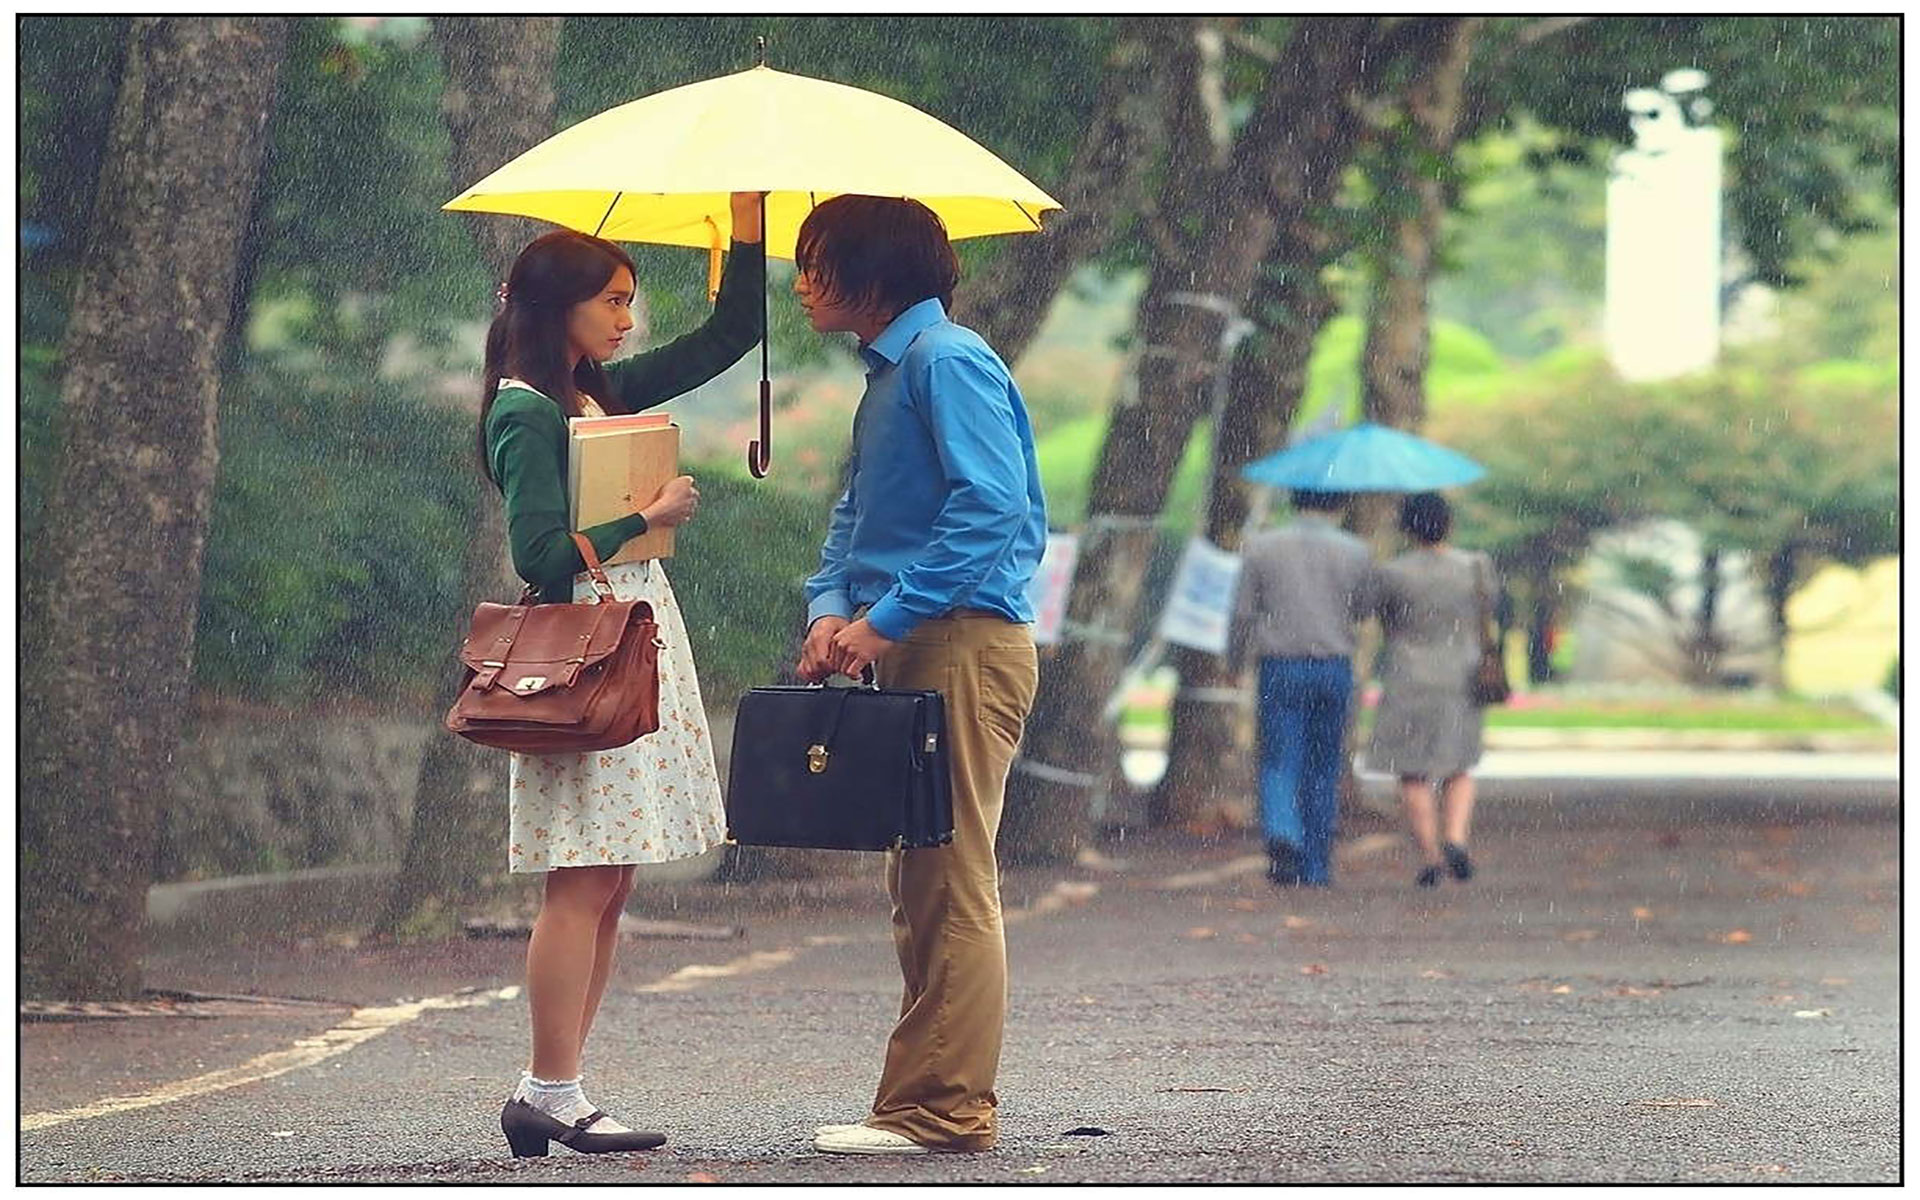 The Rain and First Love